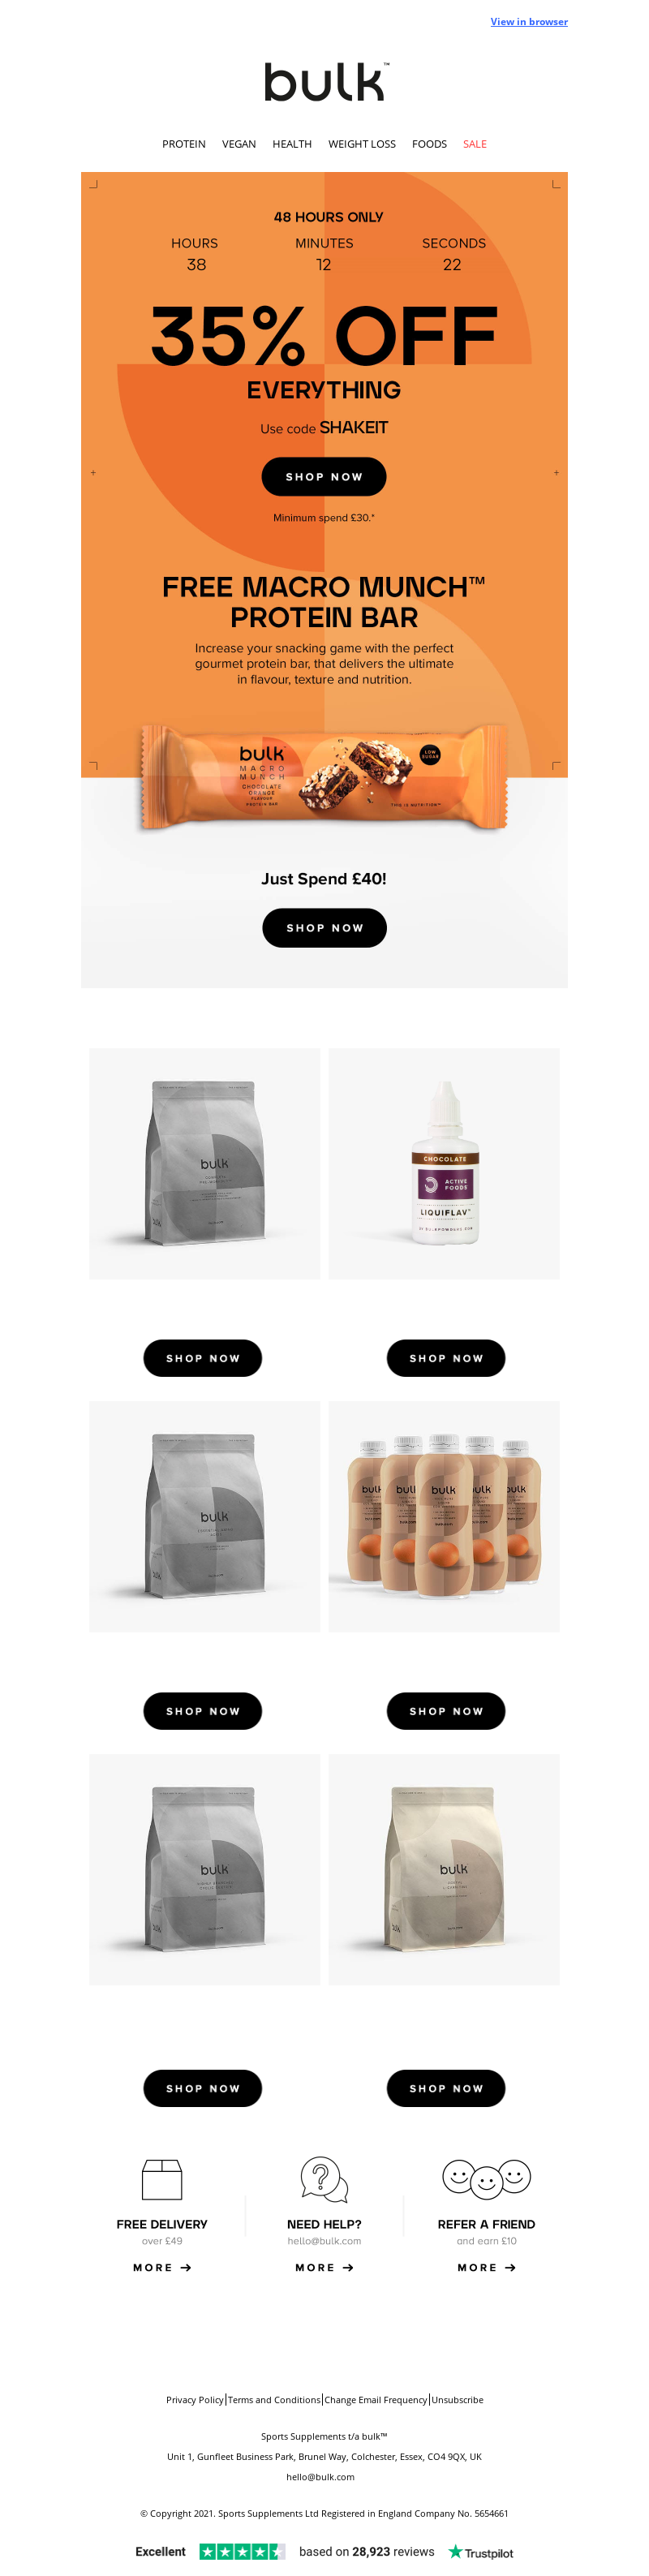 Bulk Powders (UK) - barbara, you have just 48 hours to shop this offer